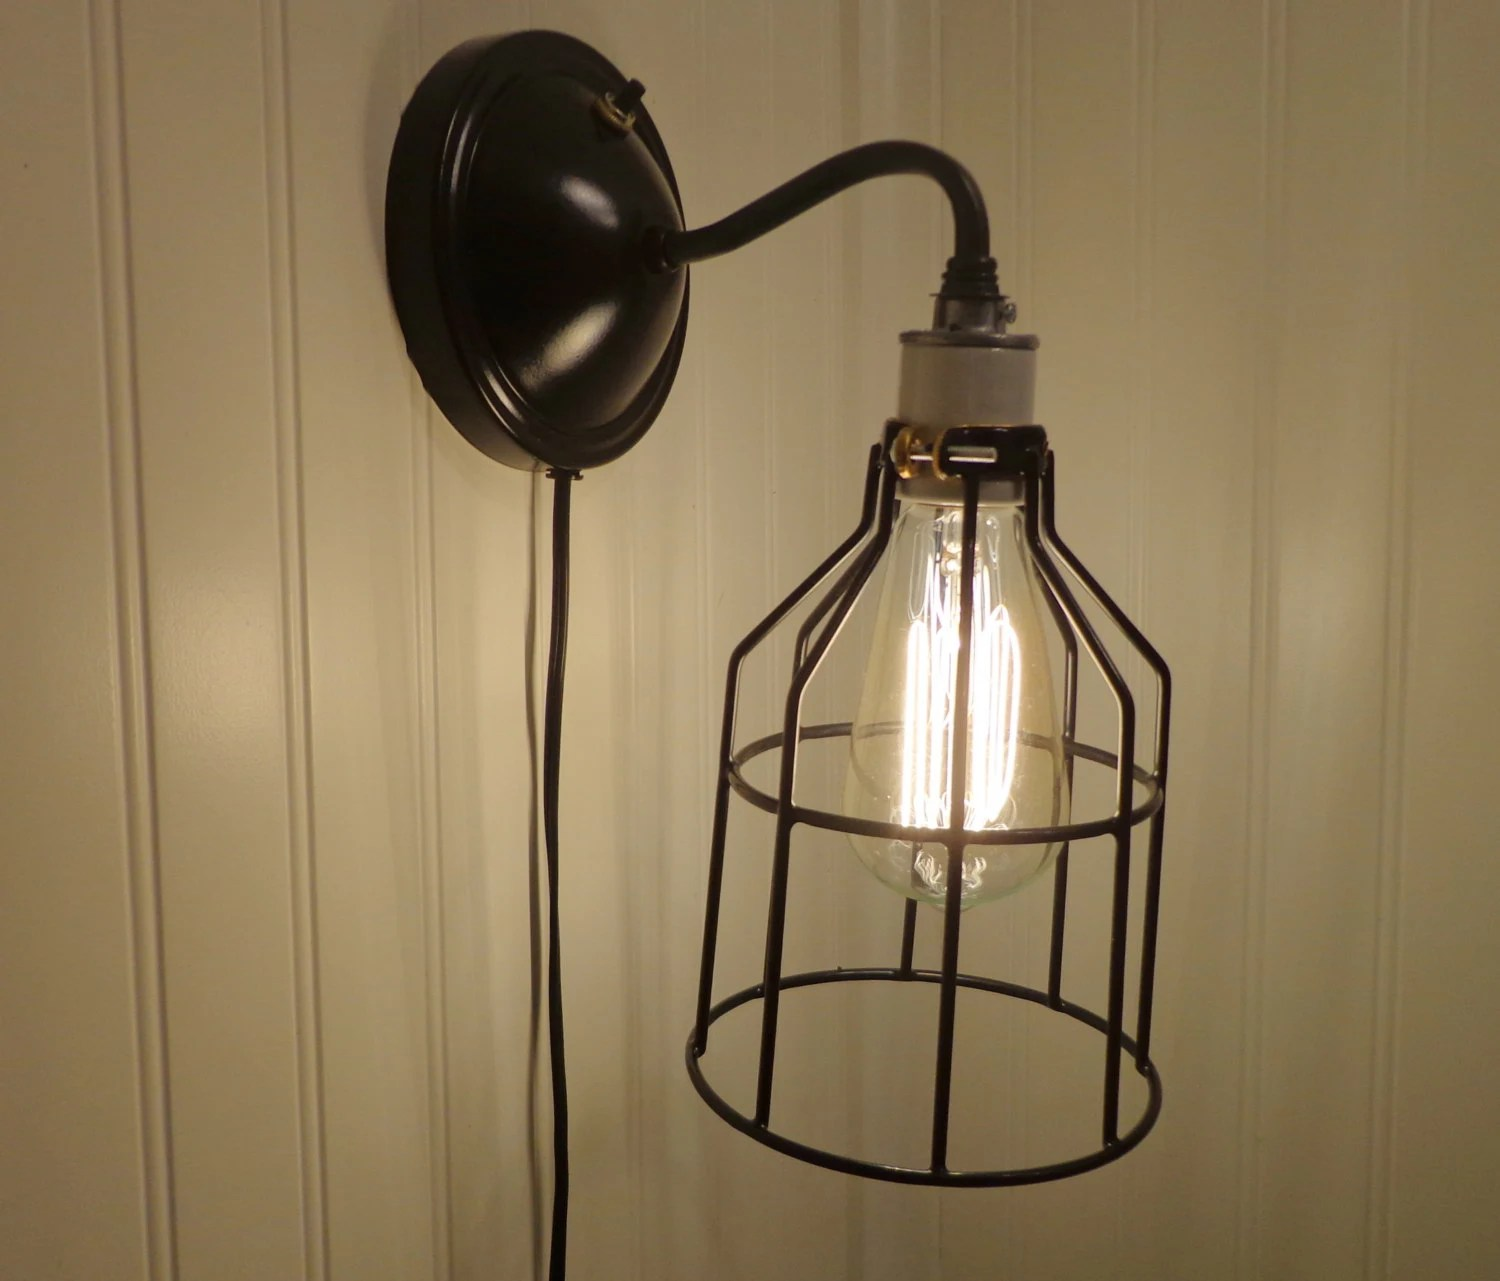 Industrial Wall LIGHTING SCONCE Plug-In with Edison Bulb ... on Plugin Wall Sconce Lights id=40872